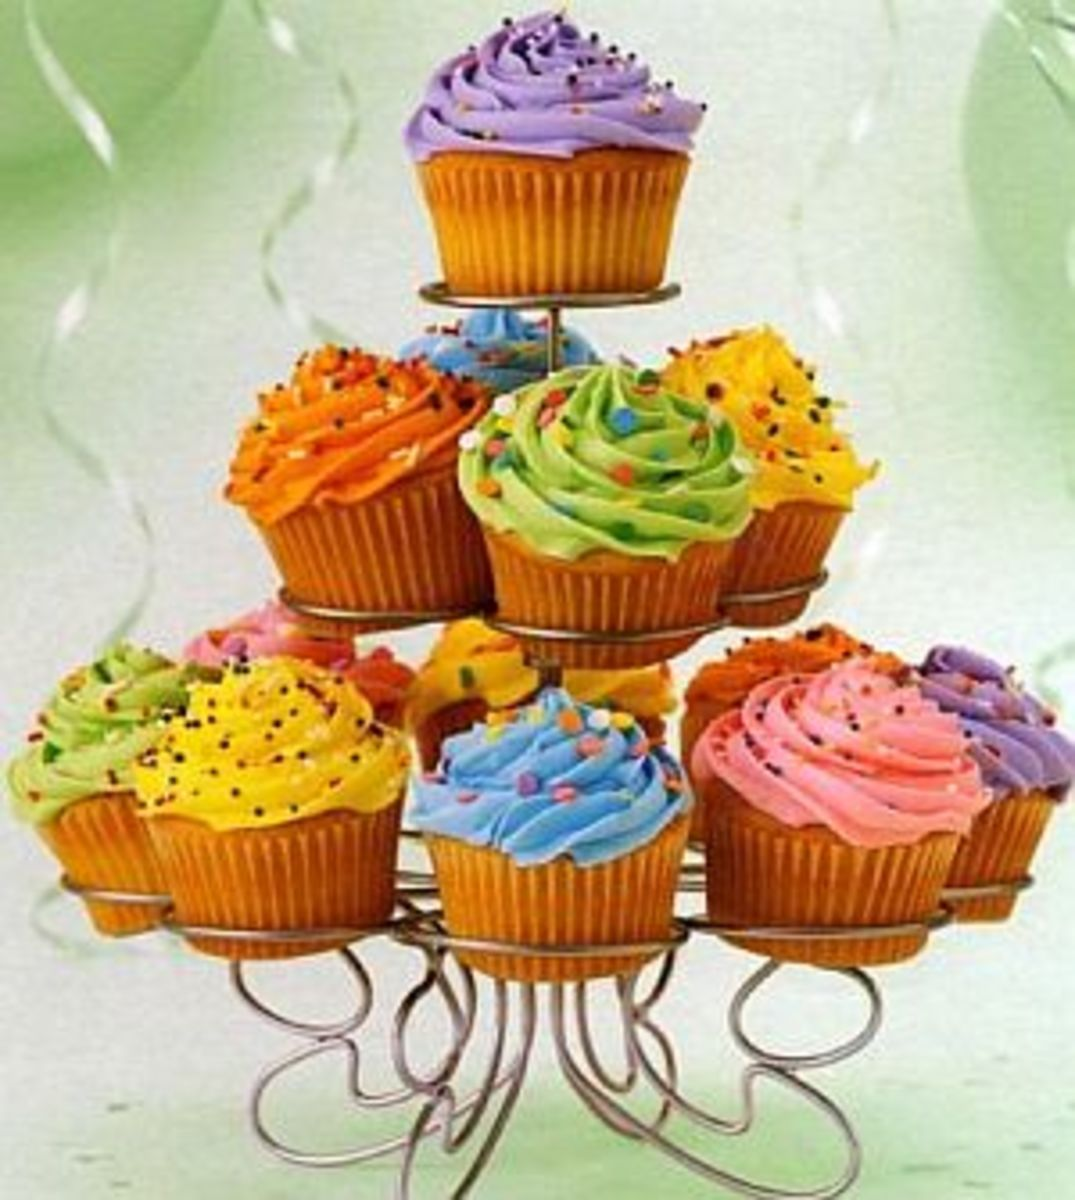 A beautifully designed cupcake tower!  They look almost too good to eat...almost.